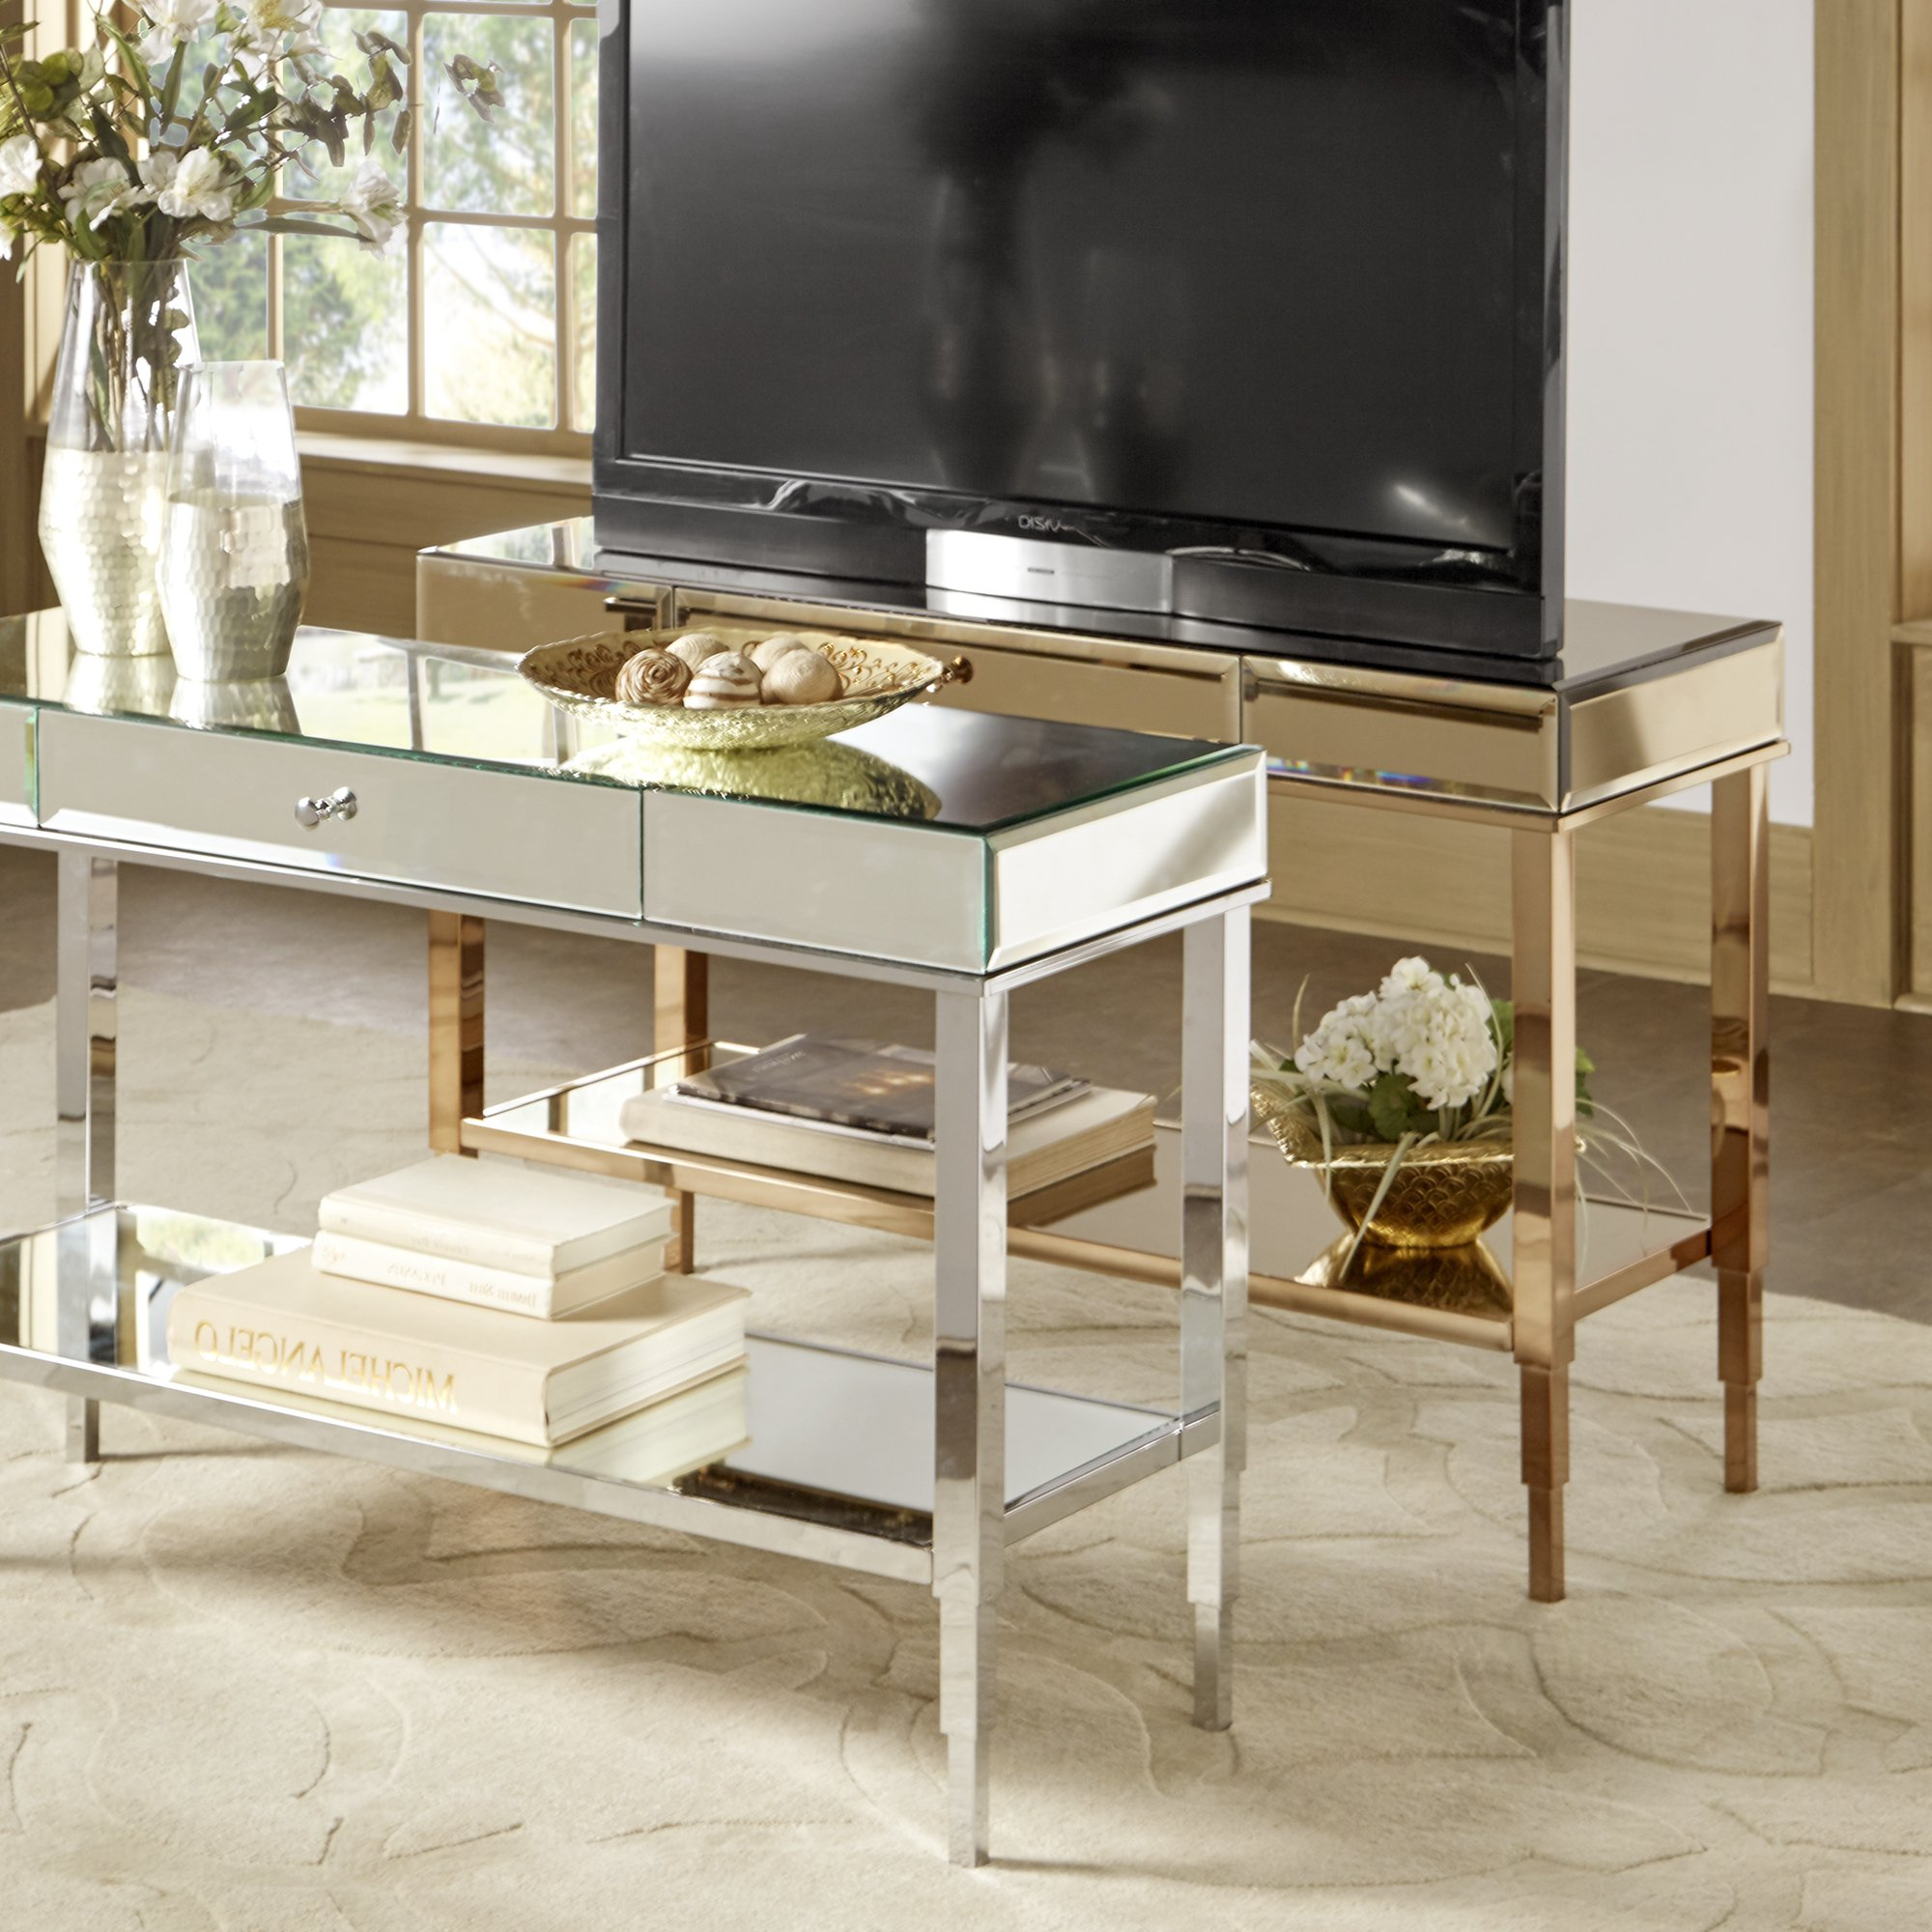 2017 Camille Glam Mirrored Tv Stand Console Table With Drawerinspire With Regard To Mirrored Tv Stands (View 1 of 20)